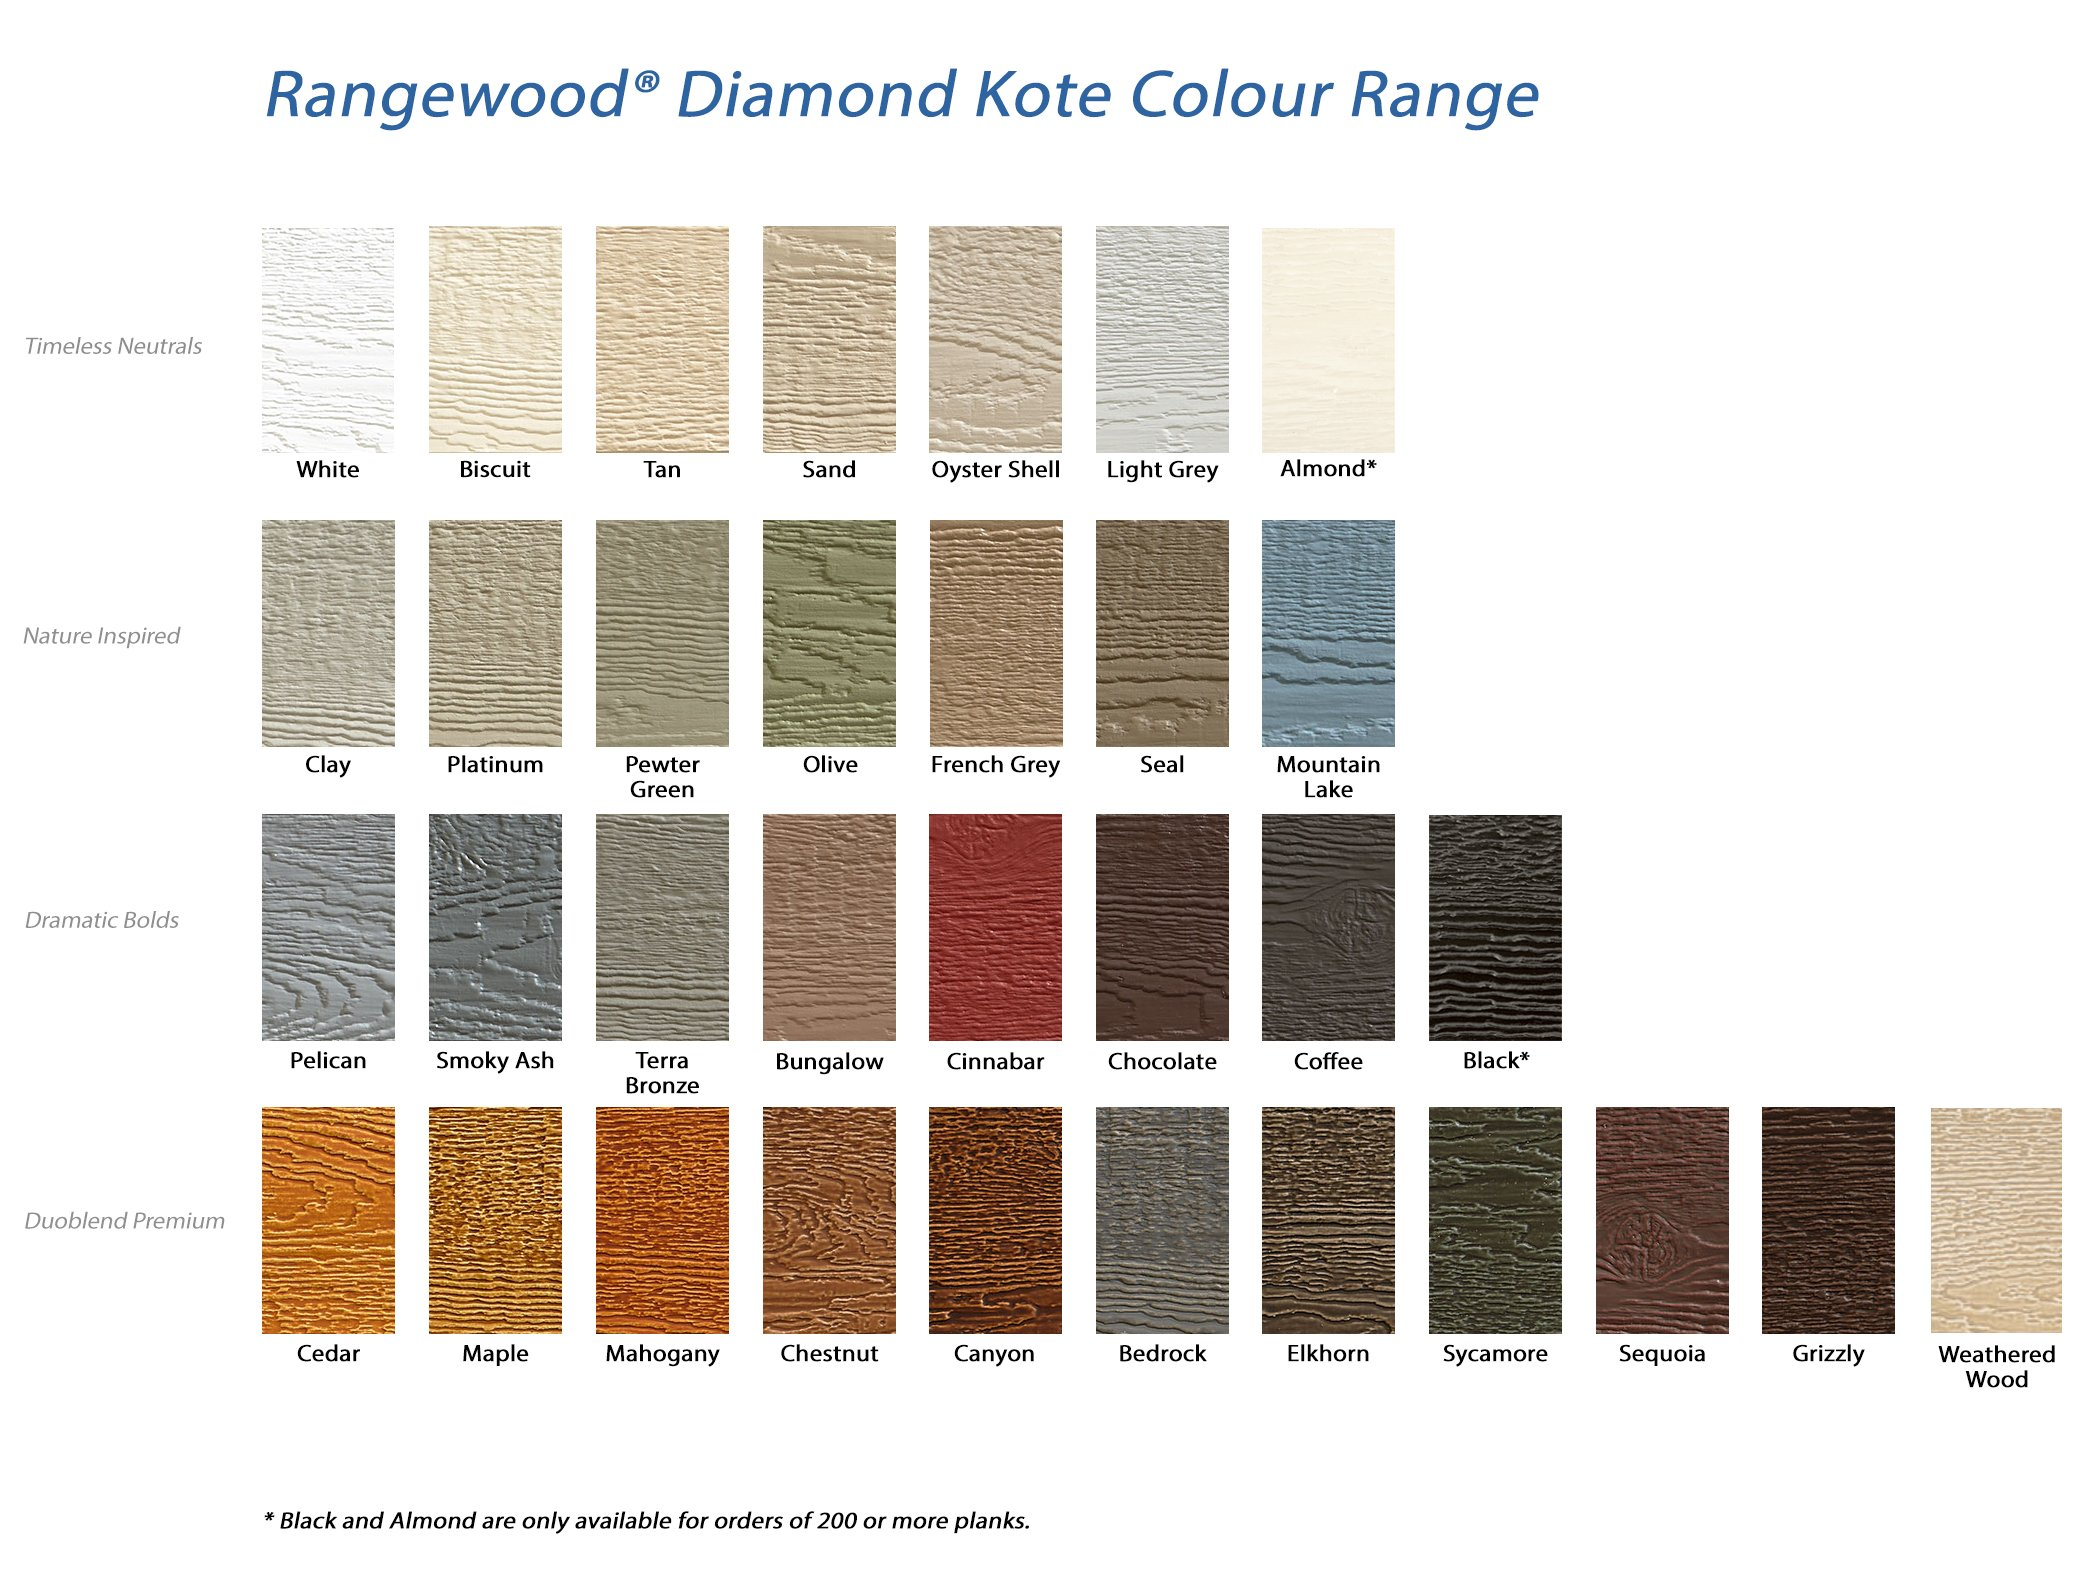 Rangewood Diamond Kote Colours Vulcan Systems